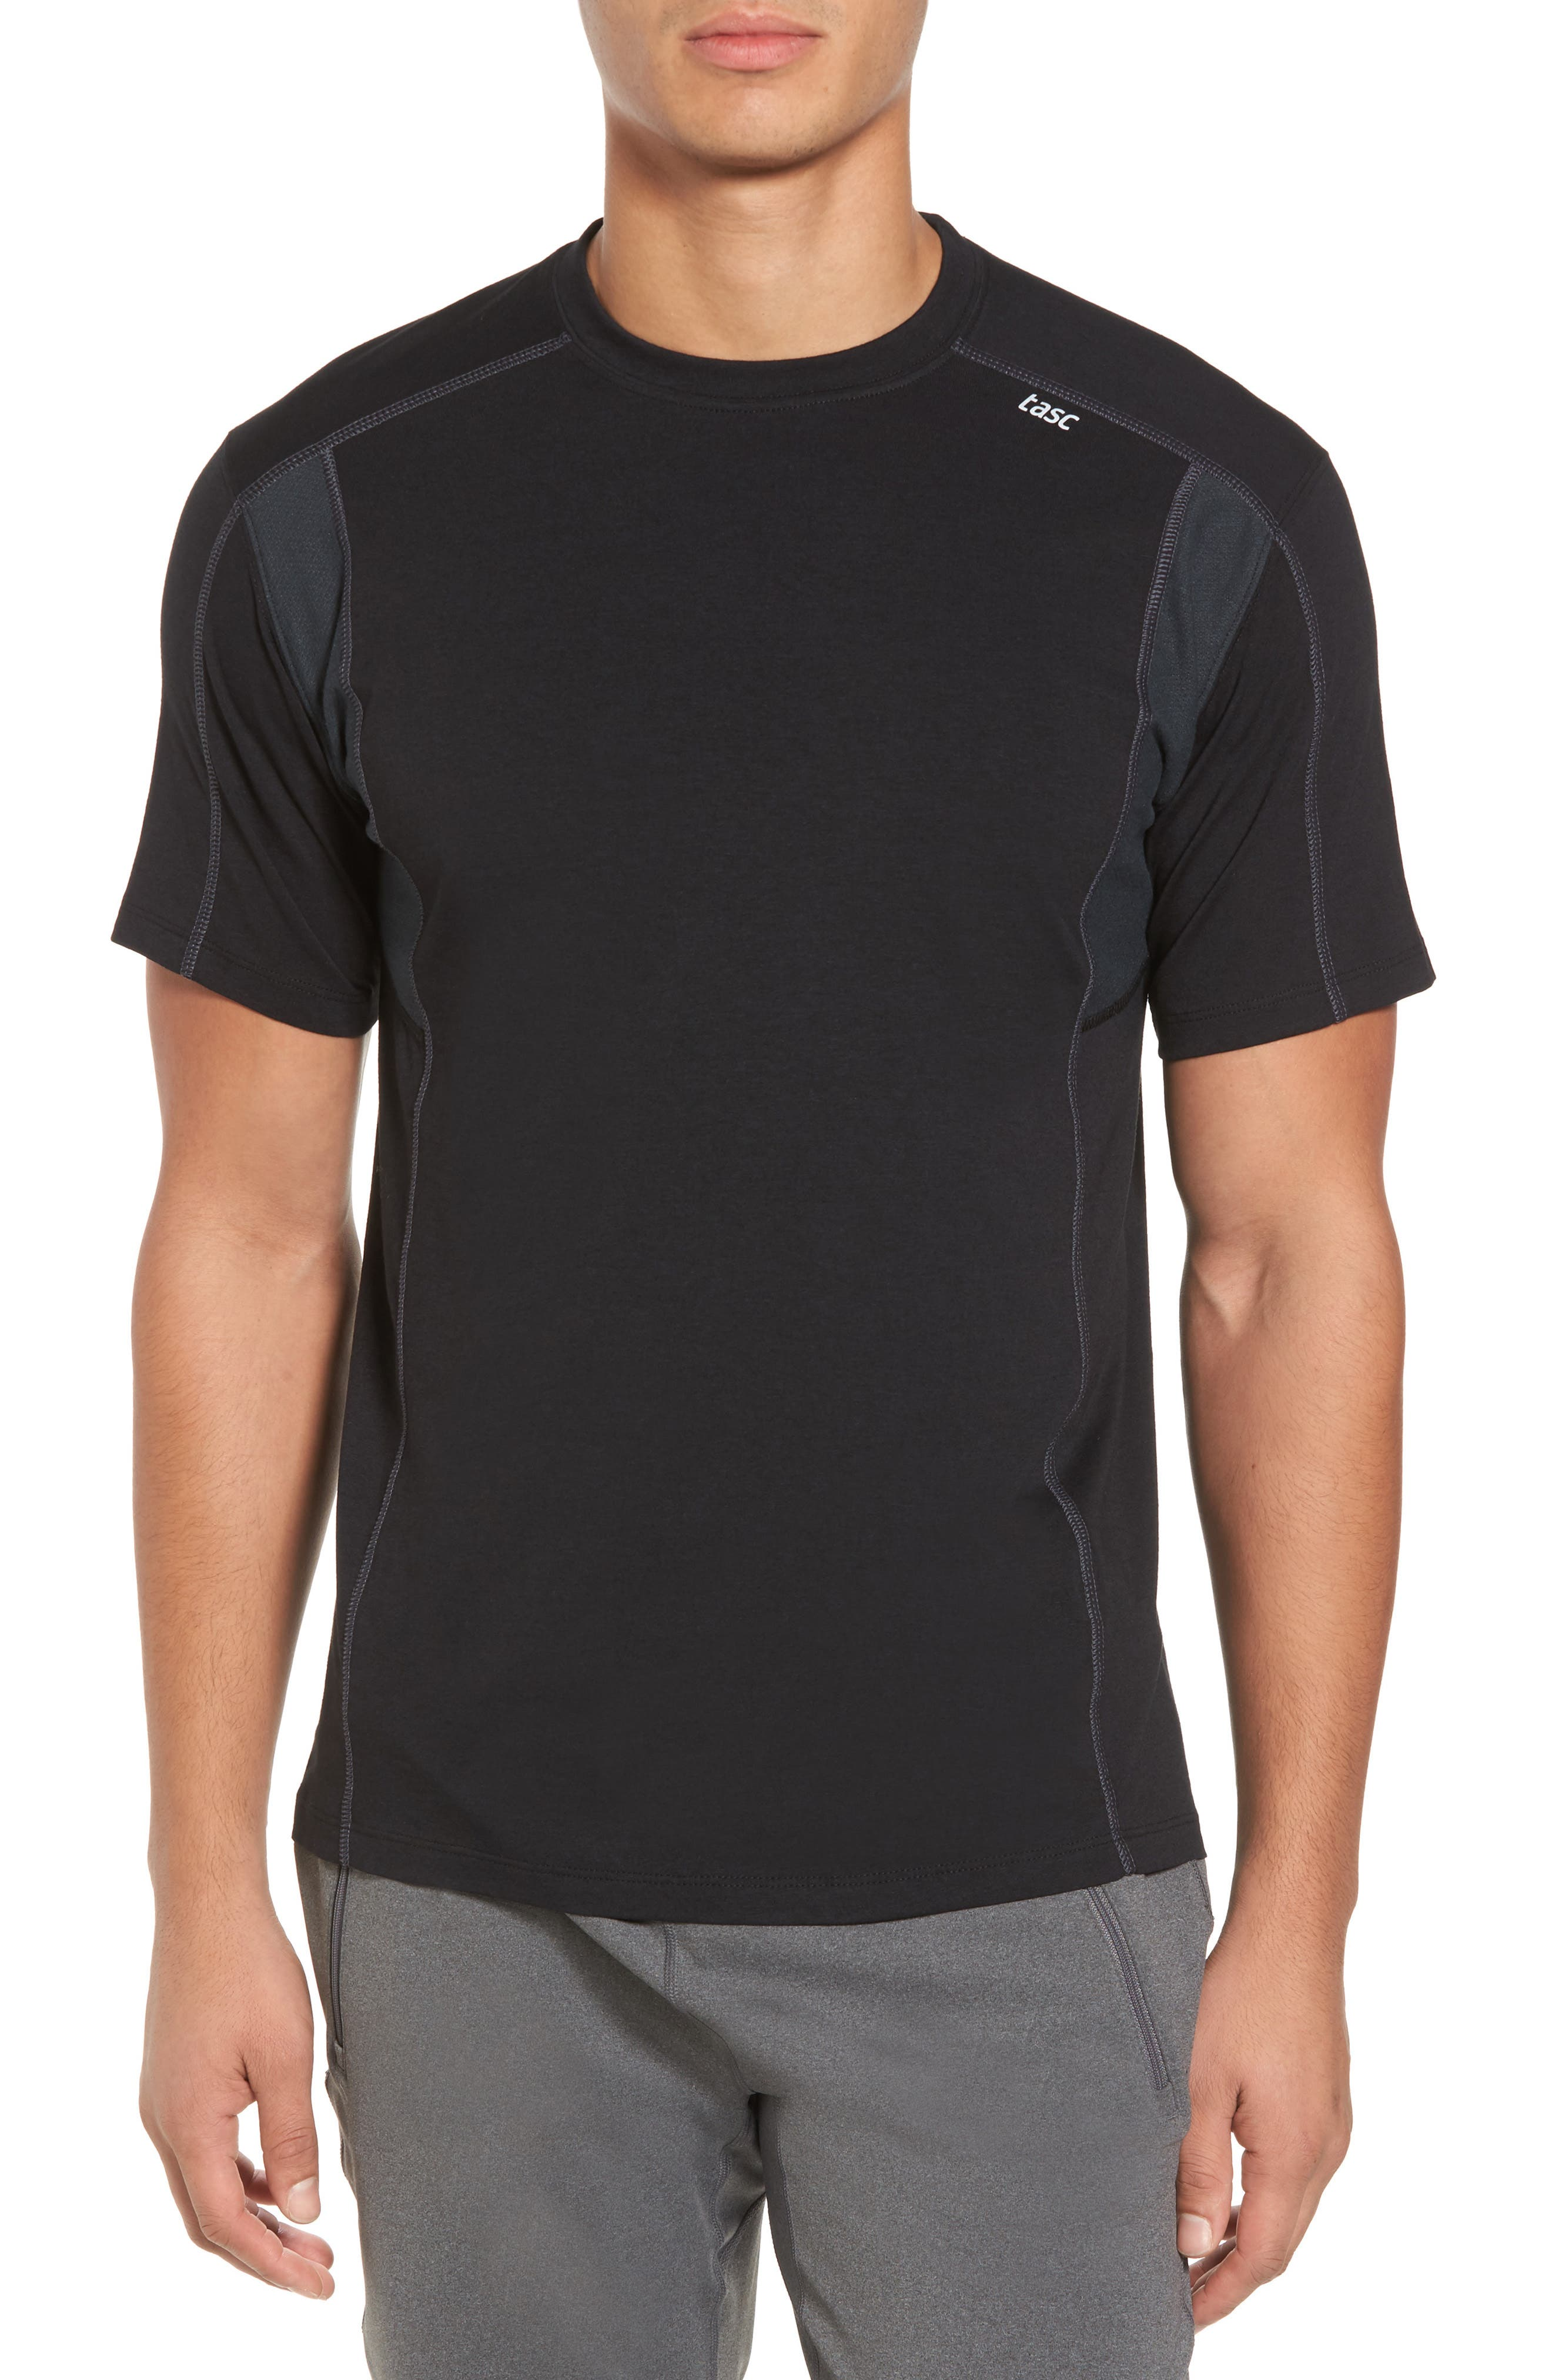 Tasc Performance Charge Semi-Fitted T-Shirt, Black